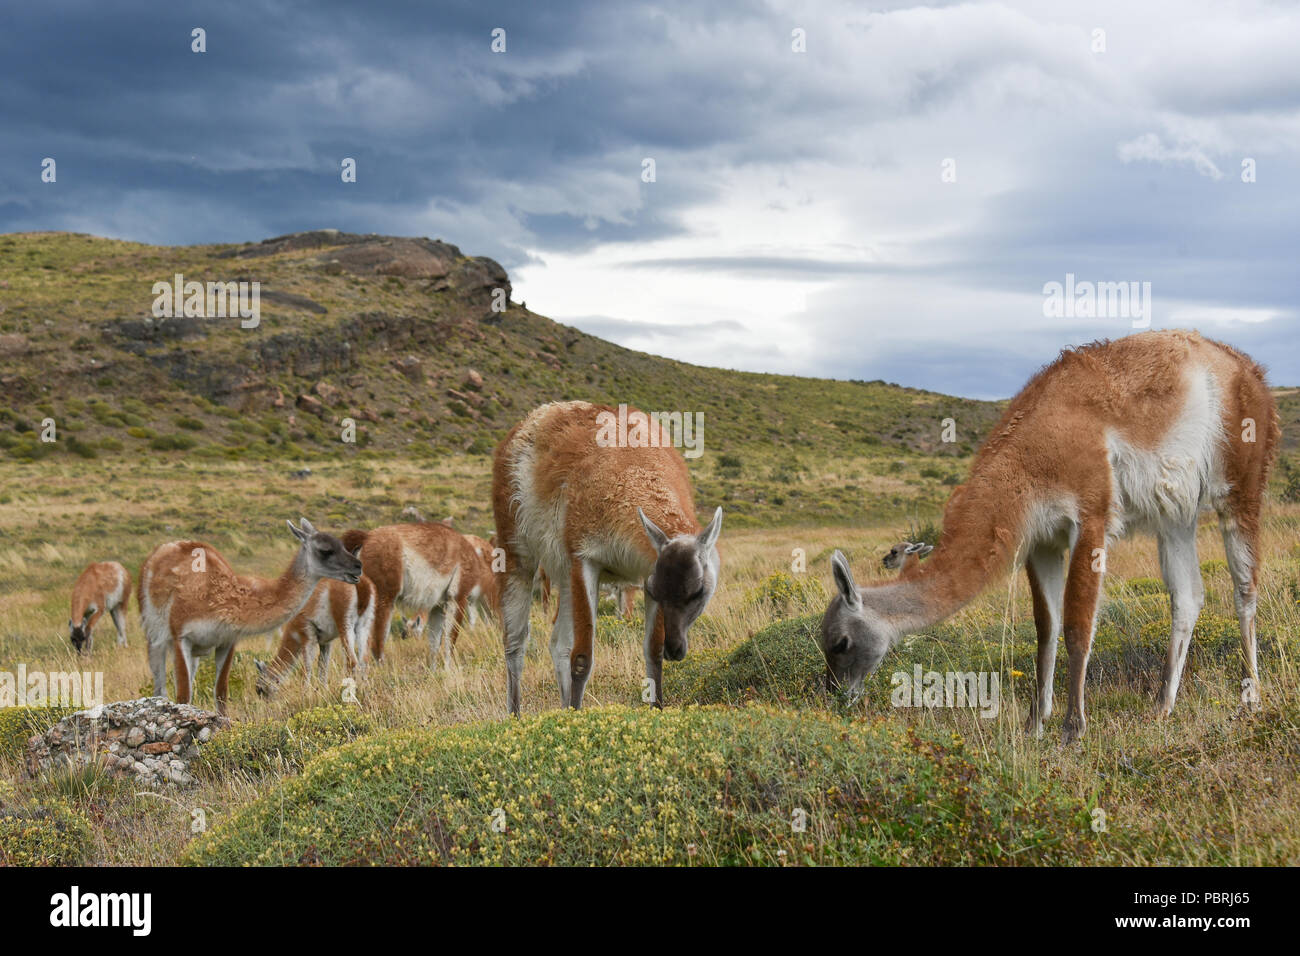 Guanacos (Lama guanicoe) after rain, Torres del Paine National Park, Patagonia, Chile, South America - Stock Image